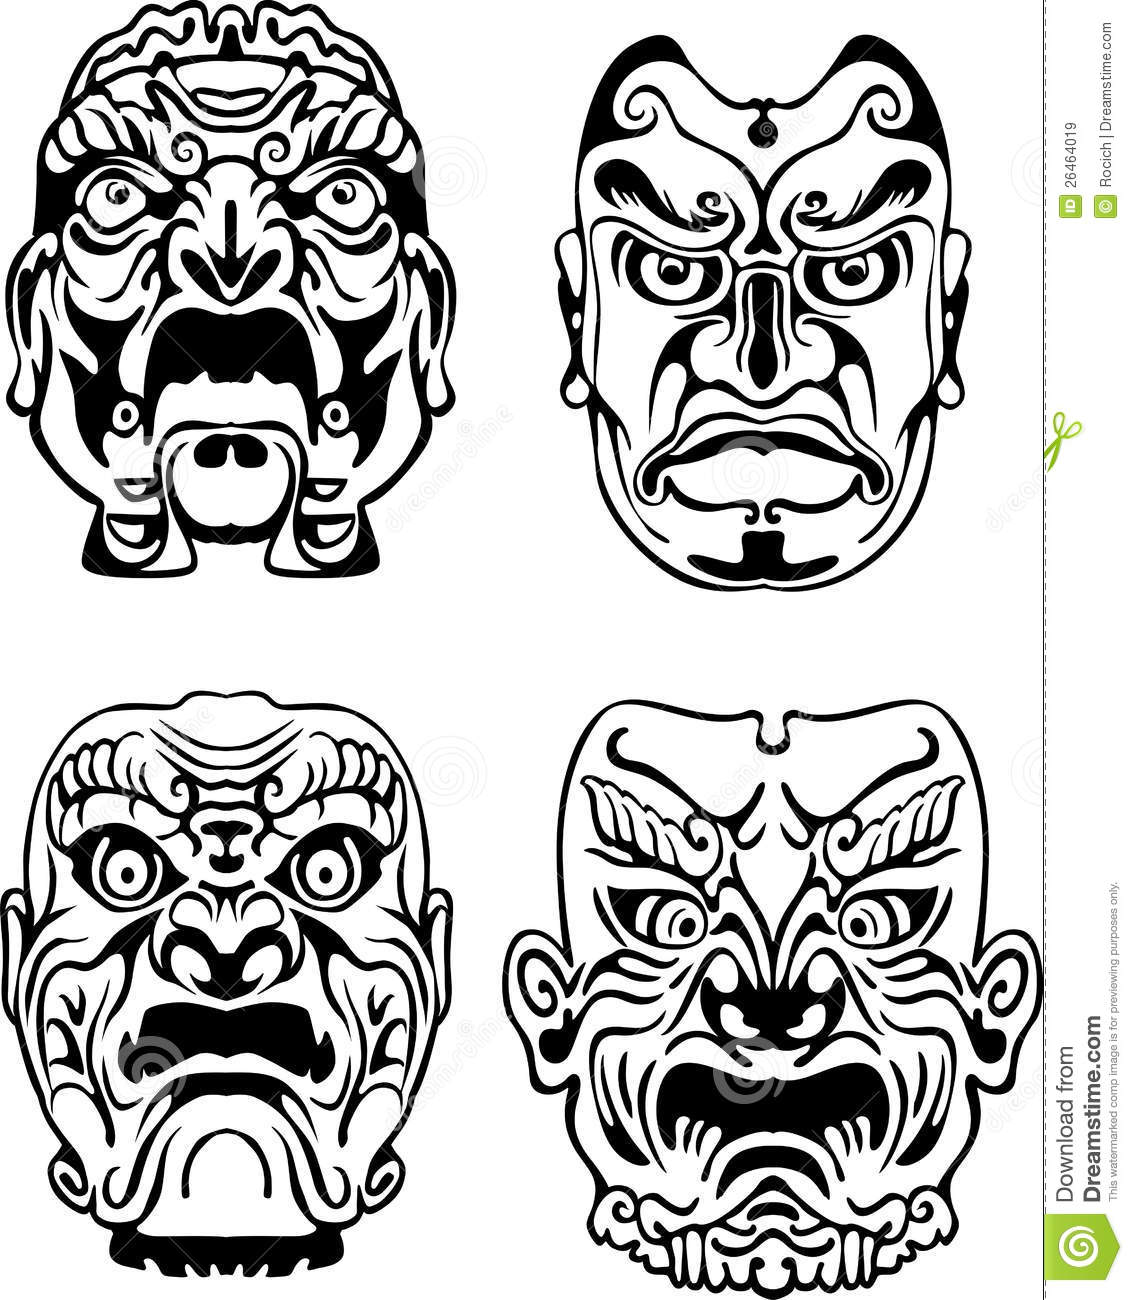 Japanese Noh Theatrical Masks Royalty Free Stock Images